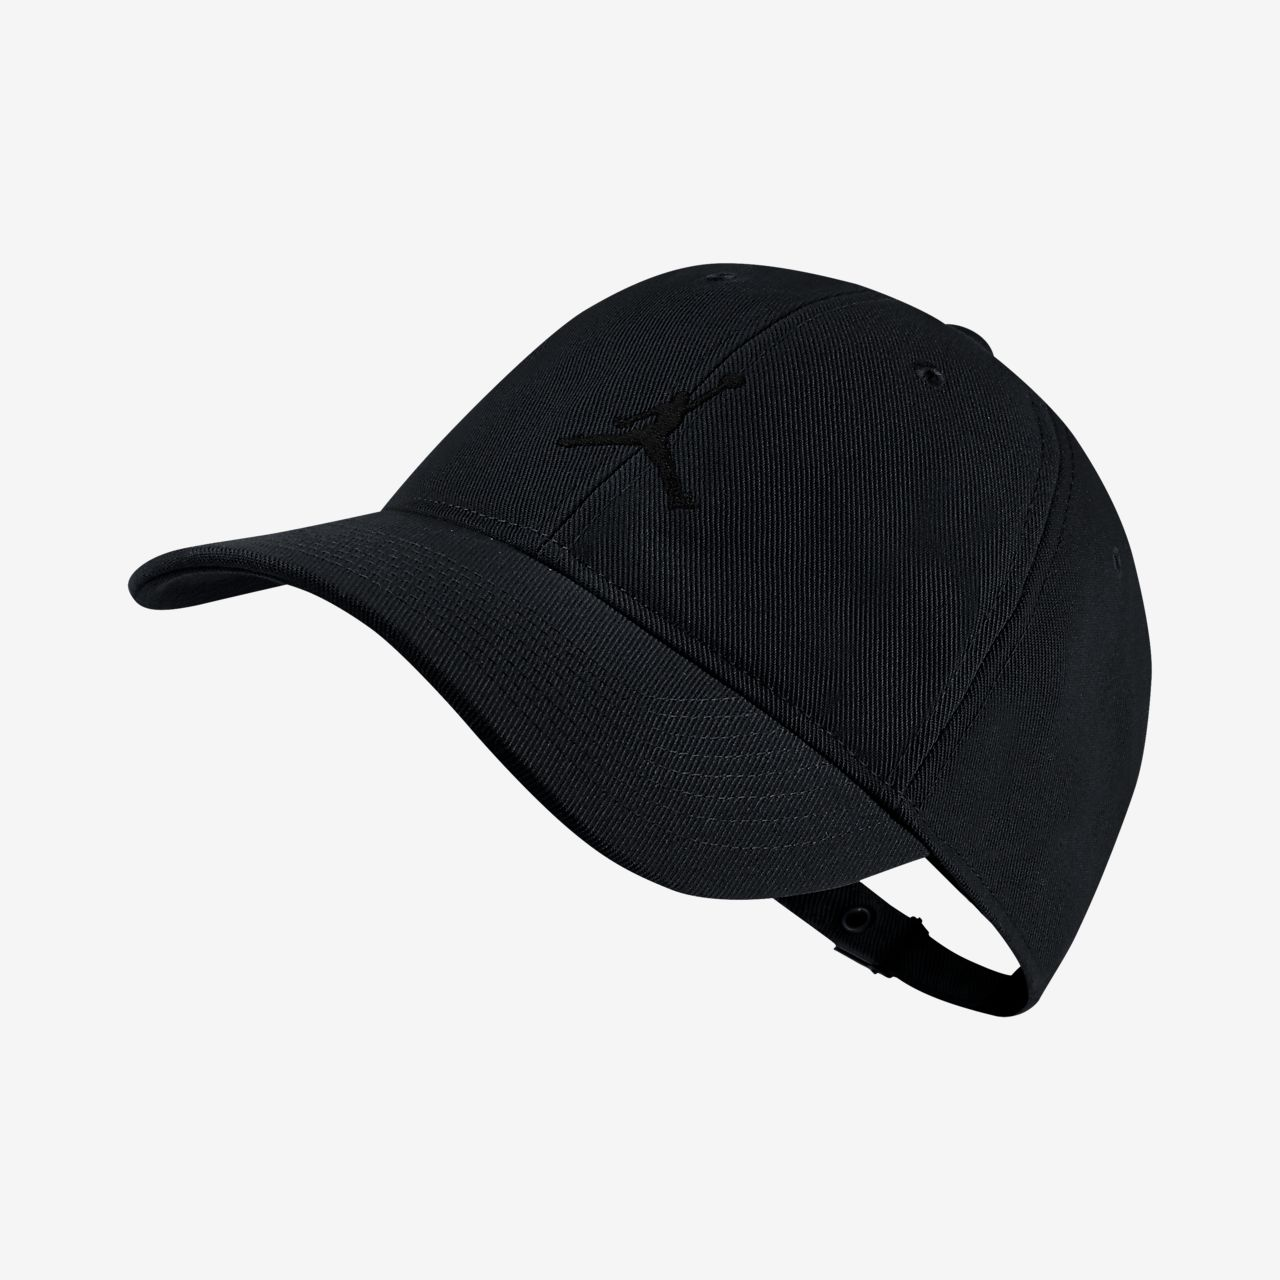 84ed45255d409 ... coupon jordan jumpman h86 adjustable hat 0a997 357d3 best price usa nike  ...